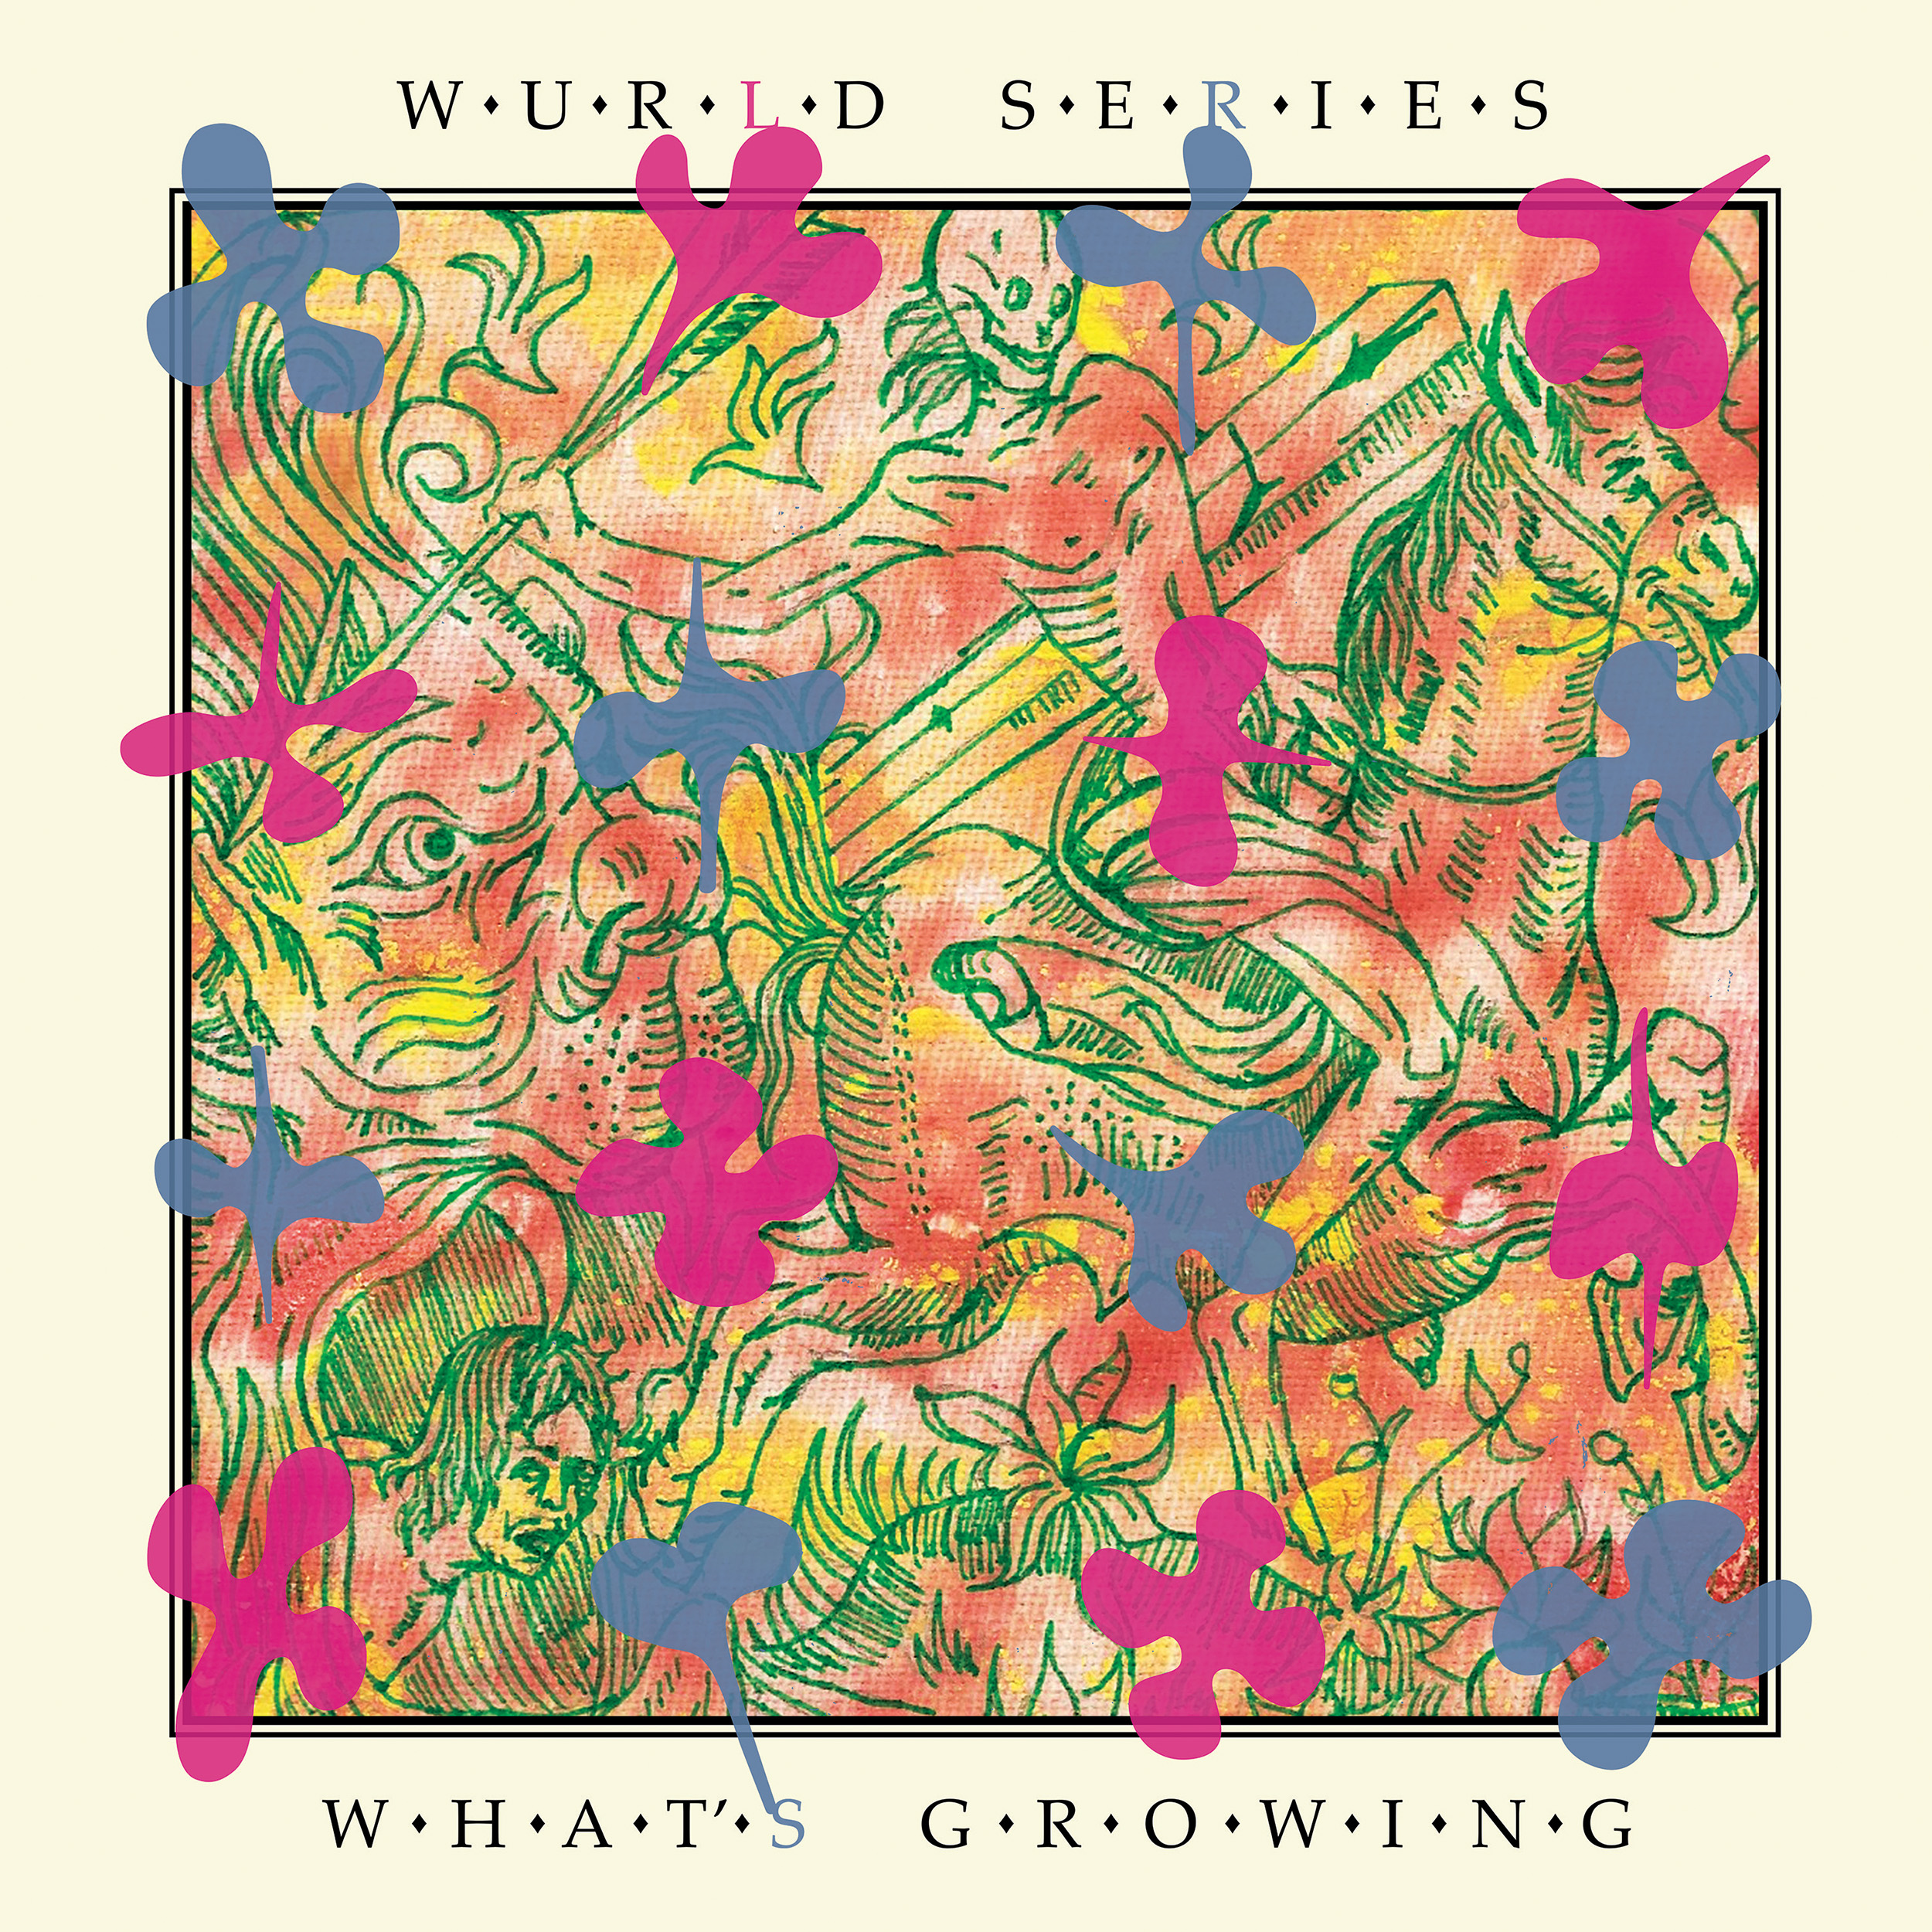 Wurld Series - What's Growing